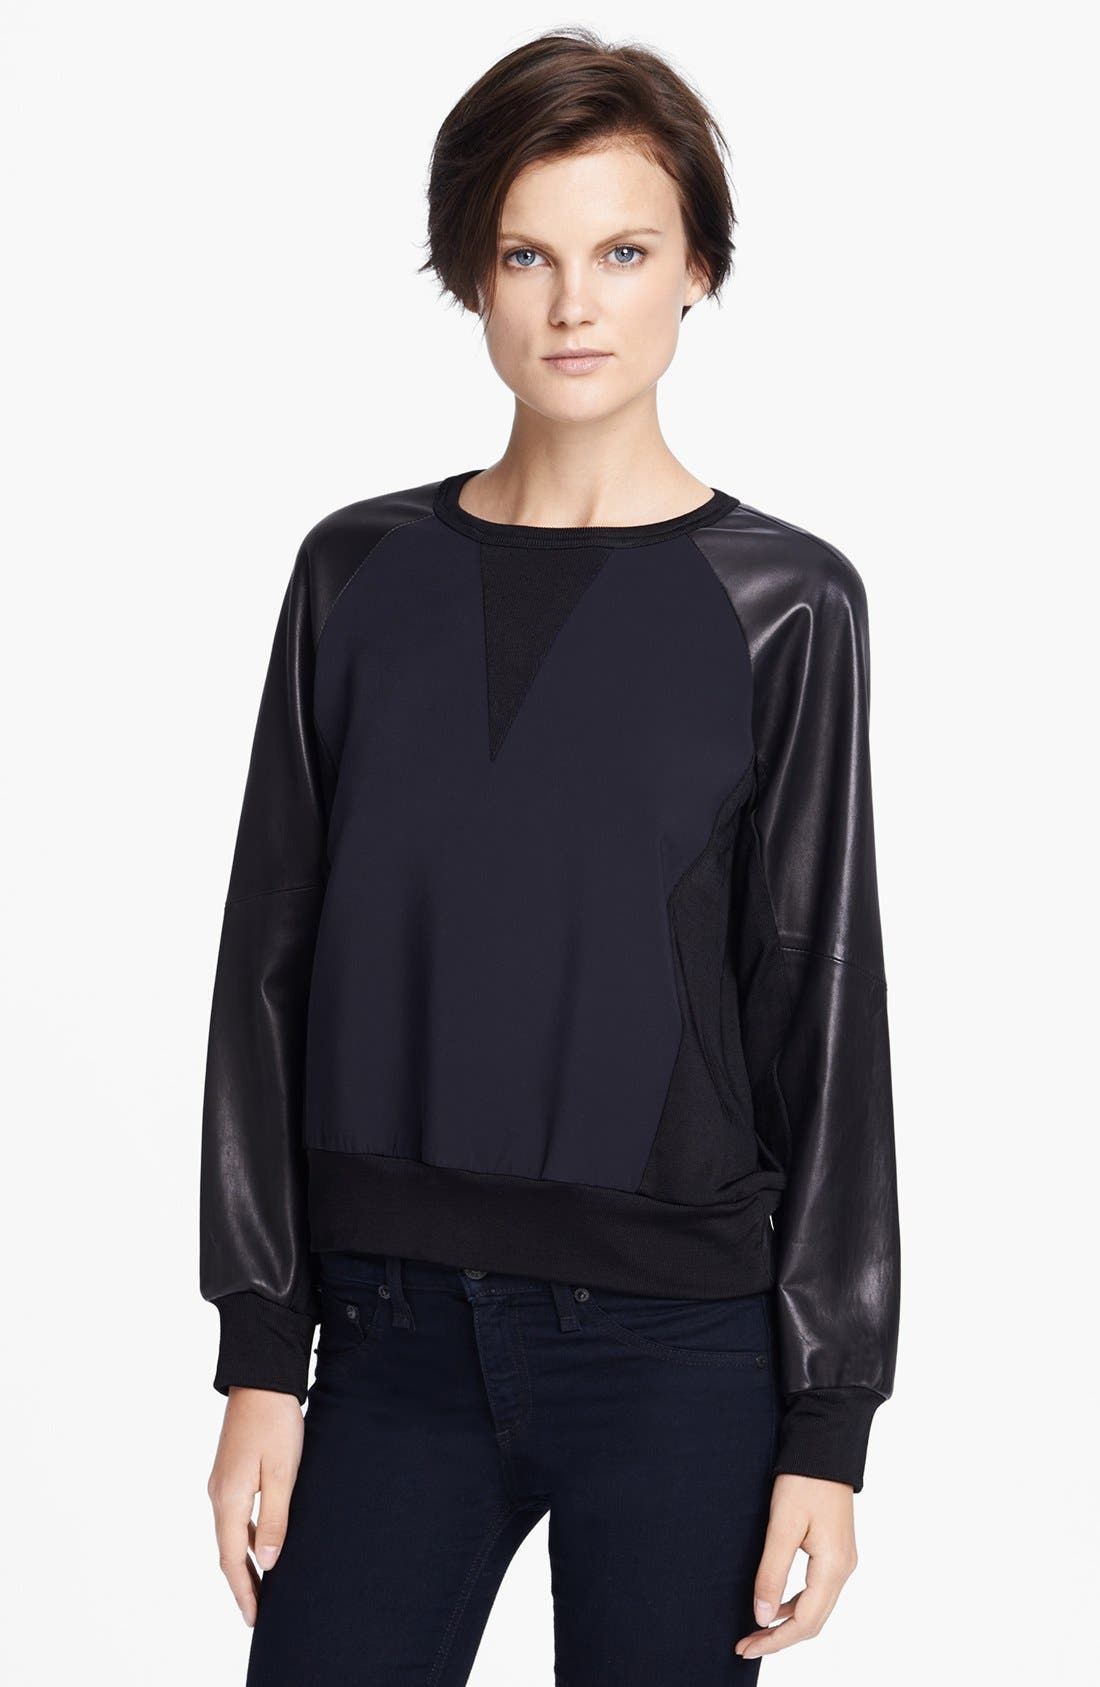 Alternate Image 1 Selected - rag & bone 'Kent' Leather Sleeve Sweatshirt